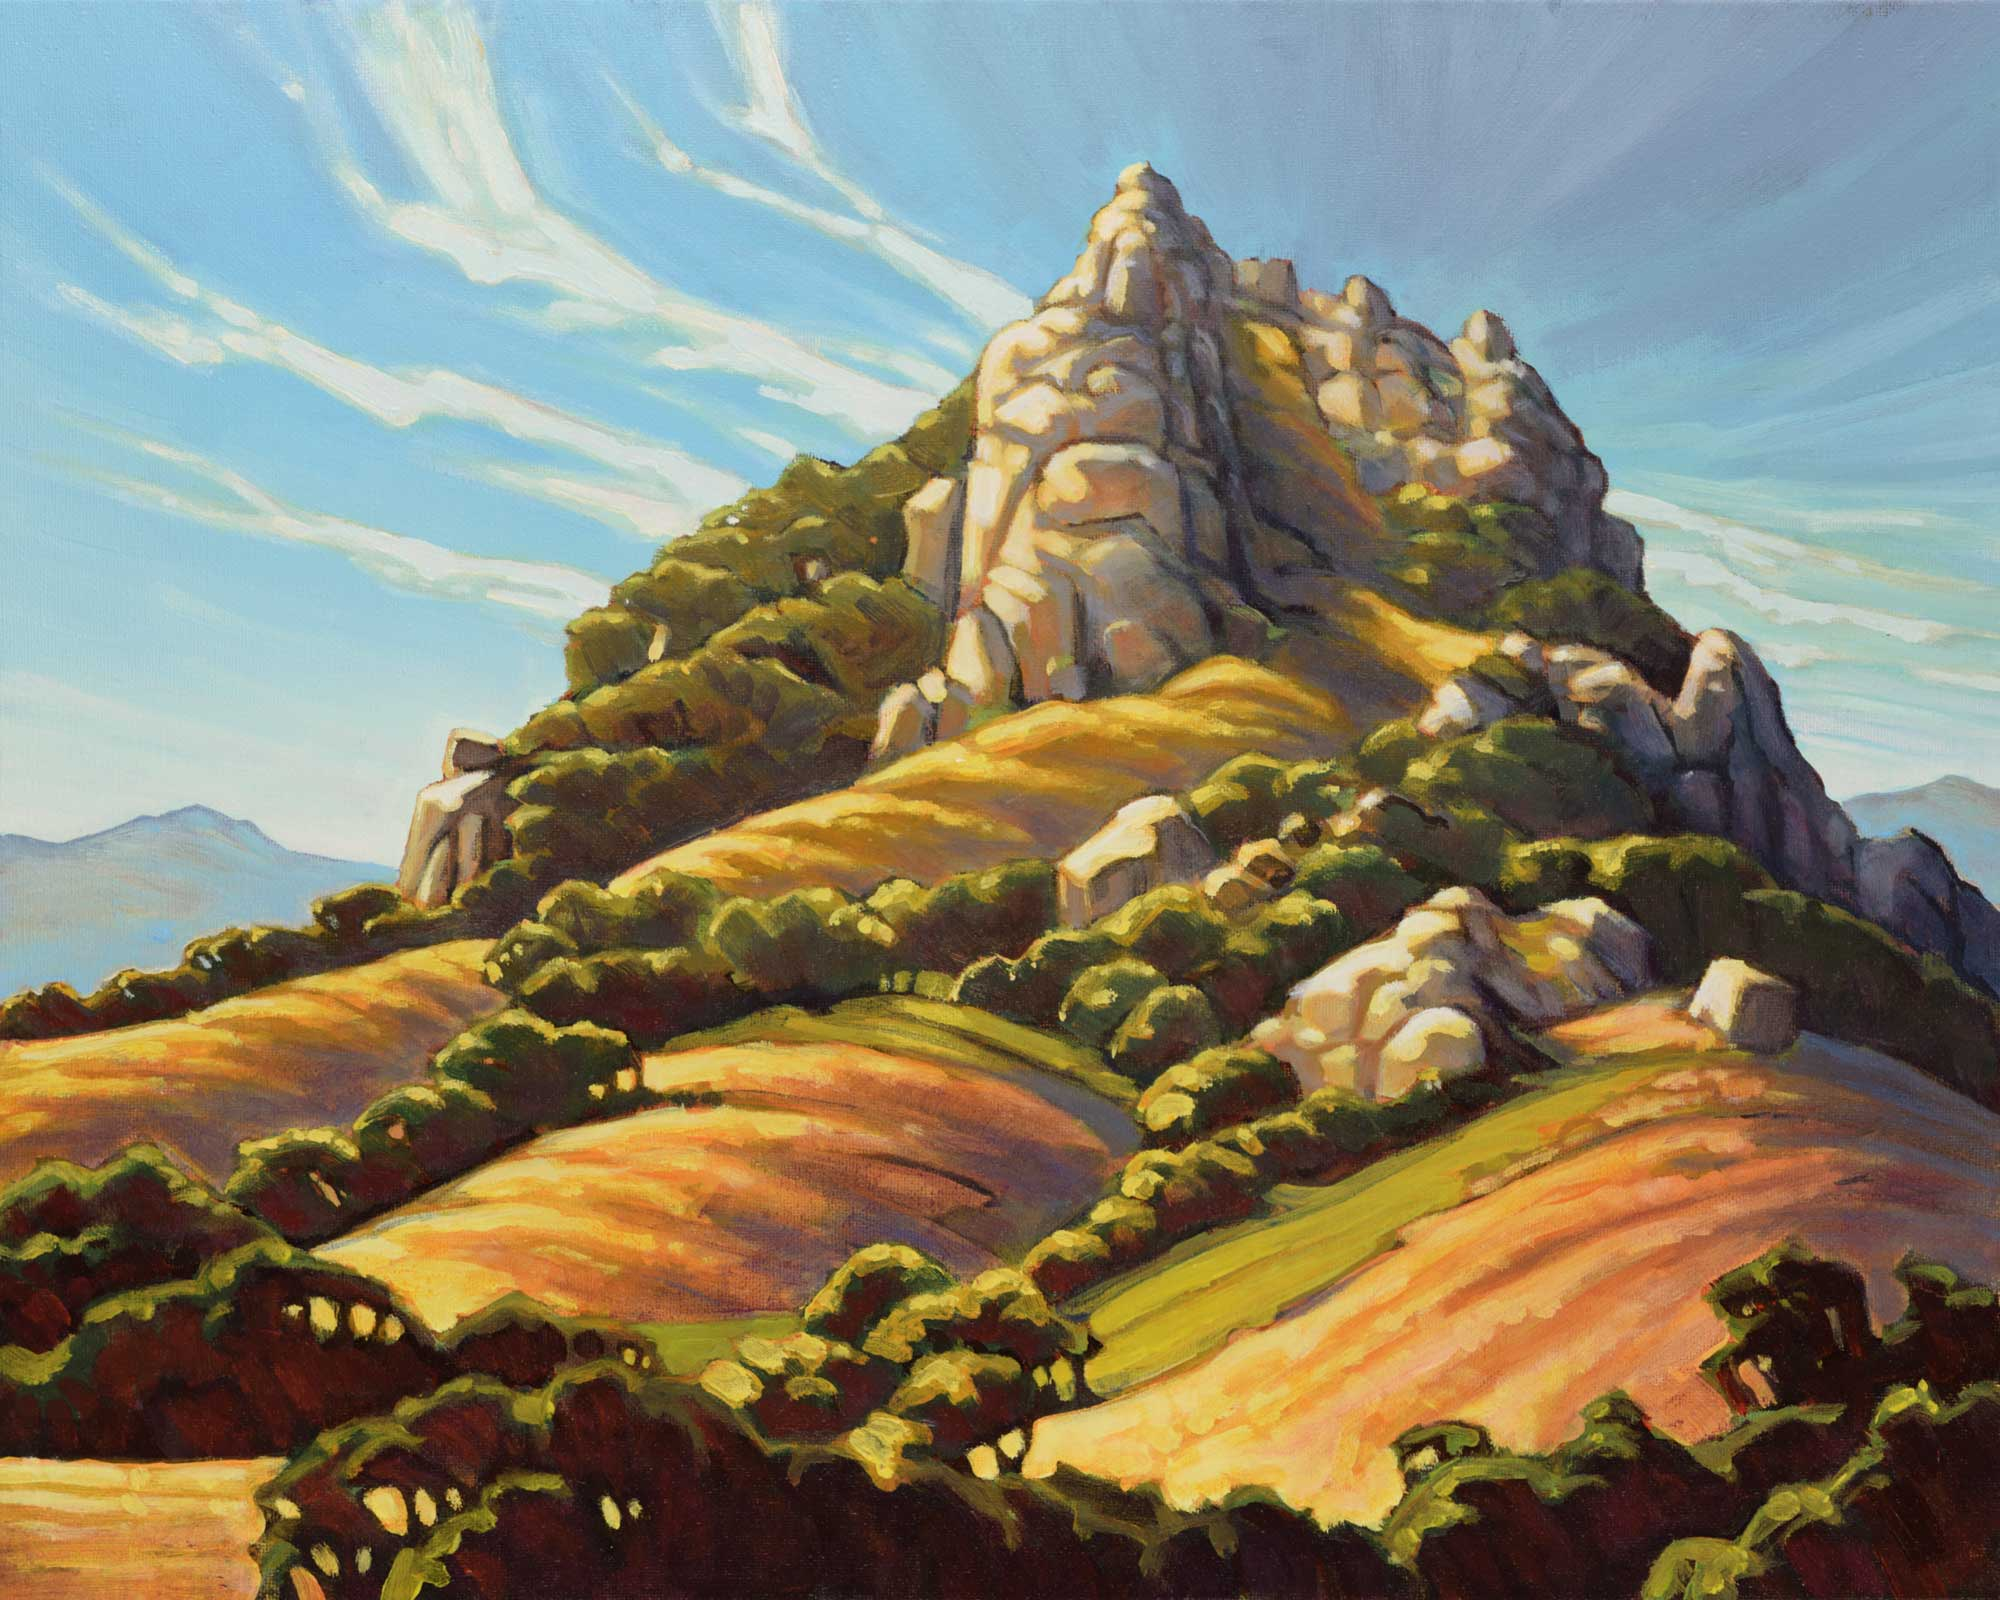 Plein air painting of Hollister Peak inspired by William Wendt in San Luis Obisbo County in Central California